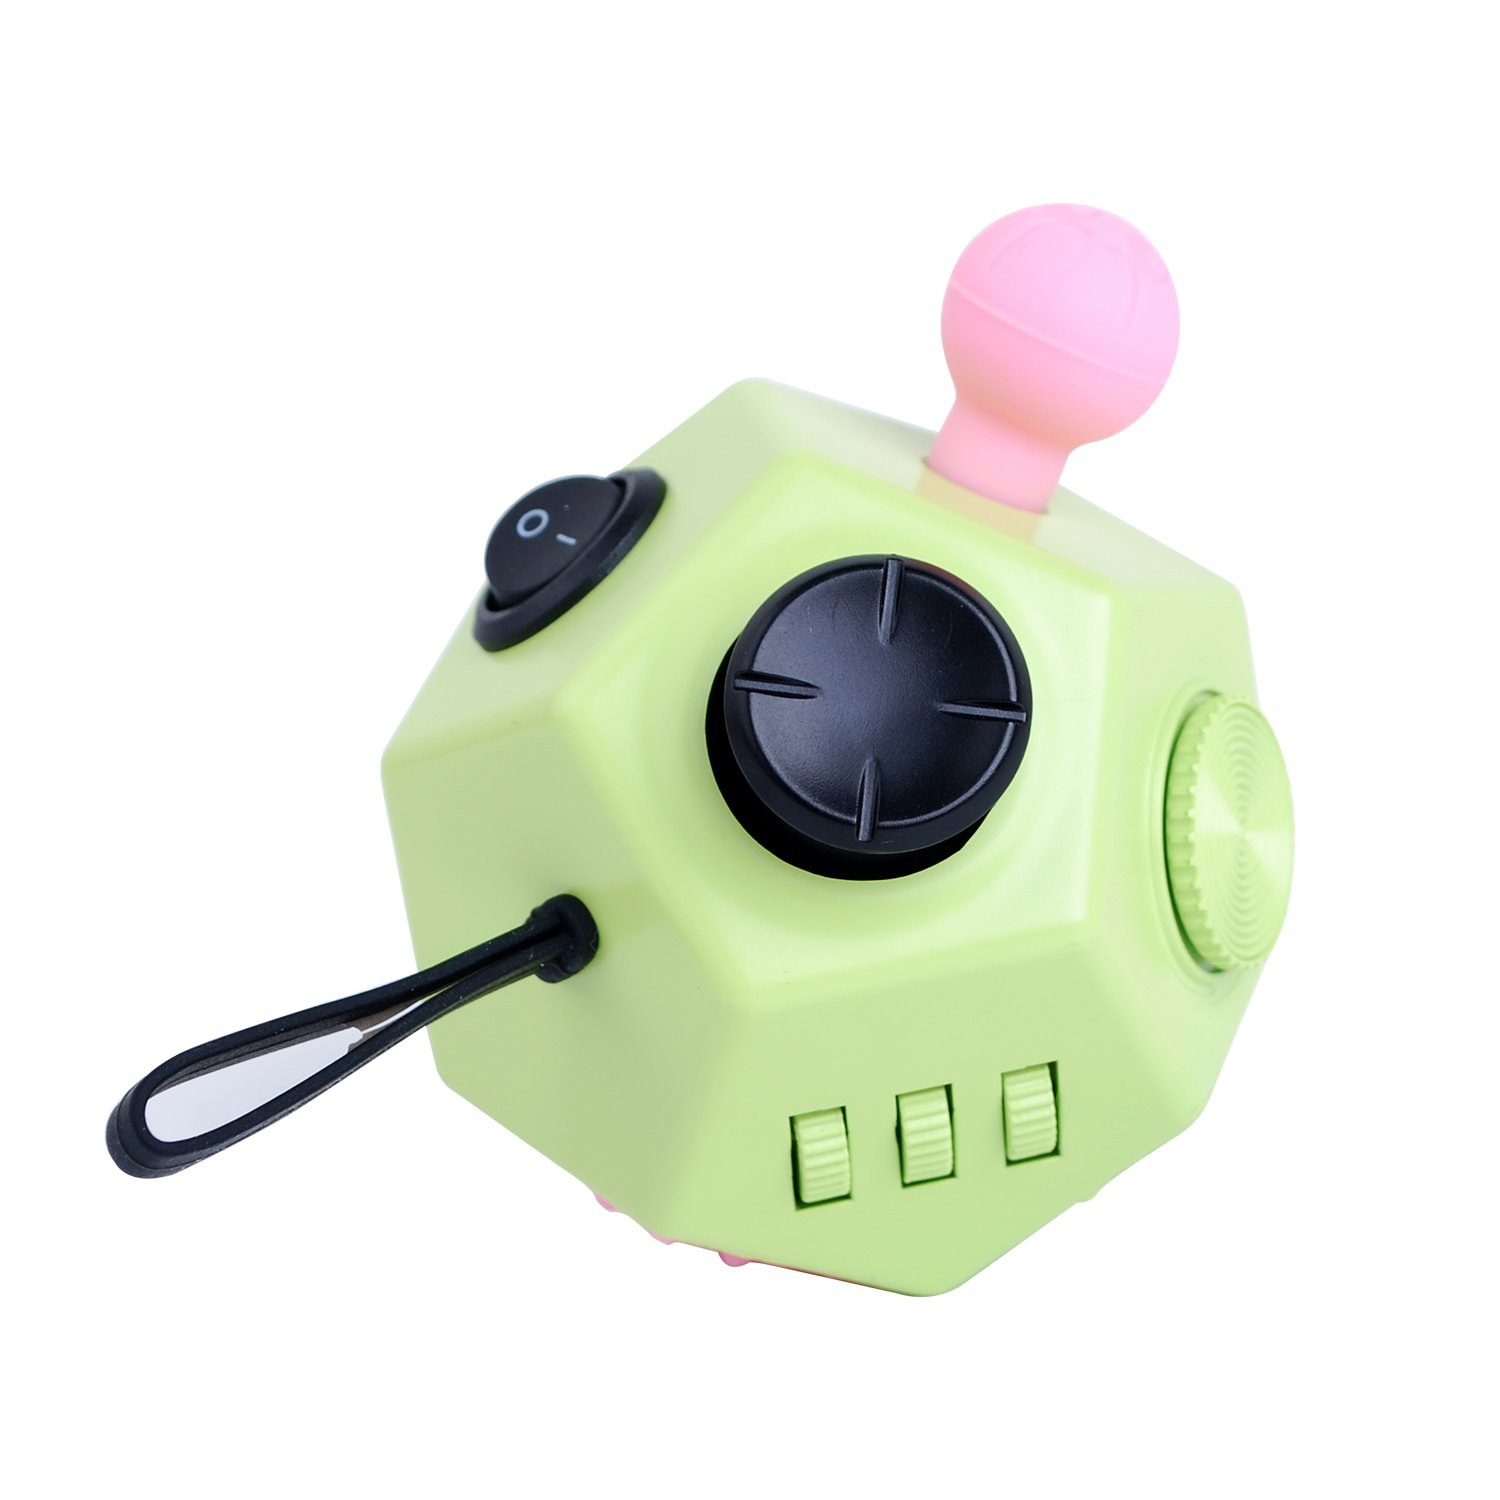 Fidget Cube Toys, Relieves Stress and Increases Focus for Adults and Children with ADHD ADD OCD Autism - 12 Sides Fidget Dice (Green) by BSL (Image #3)